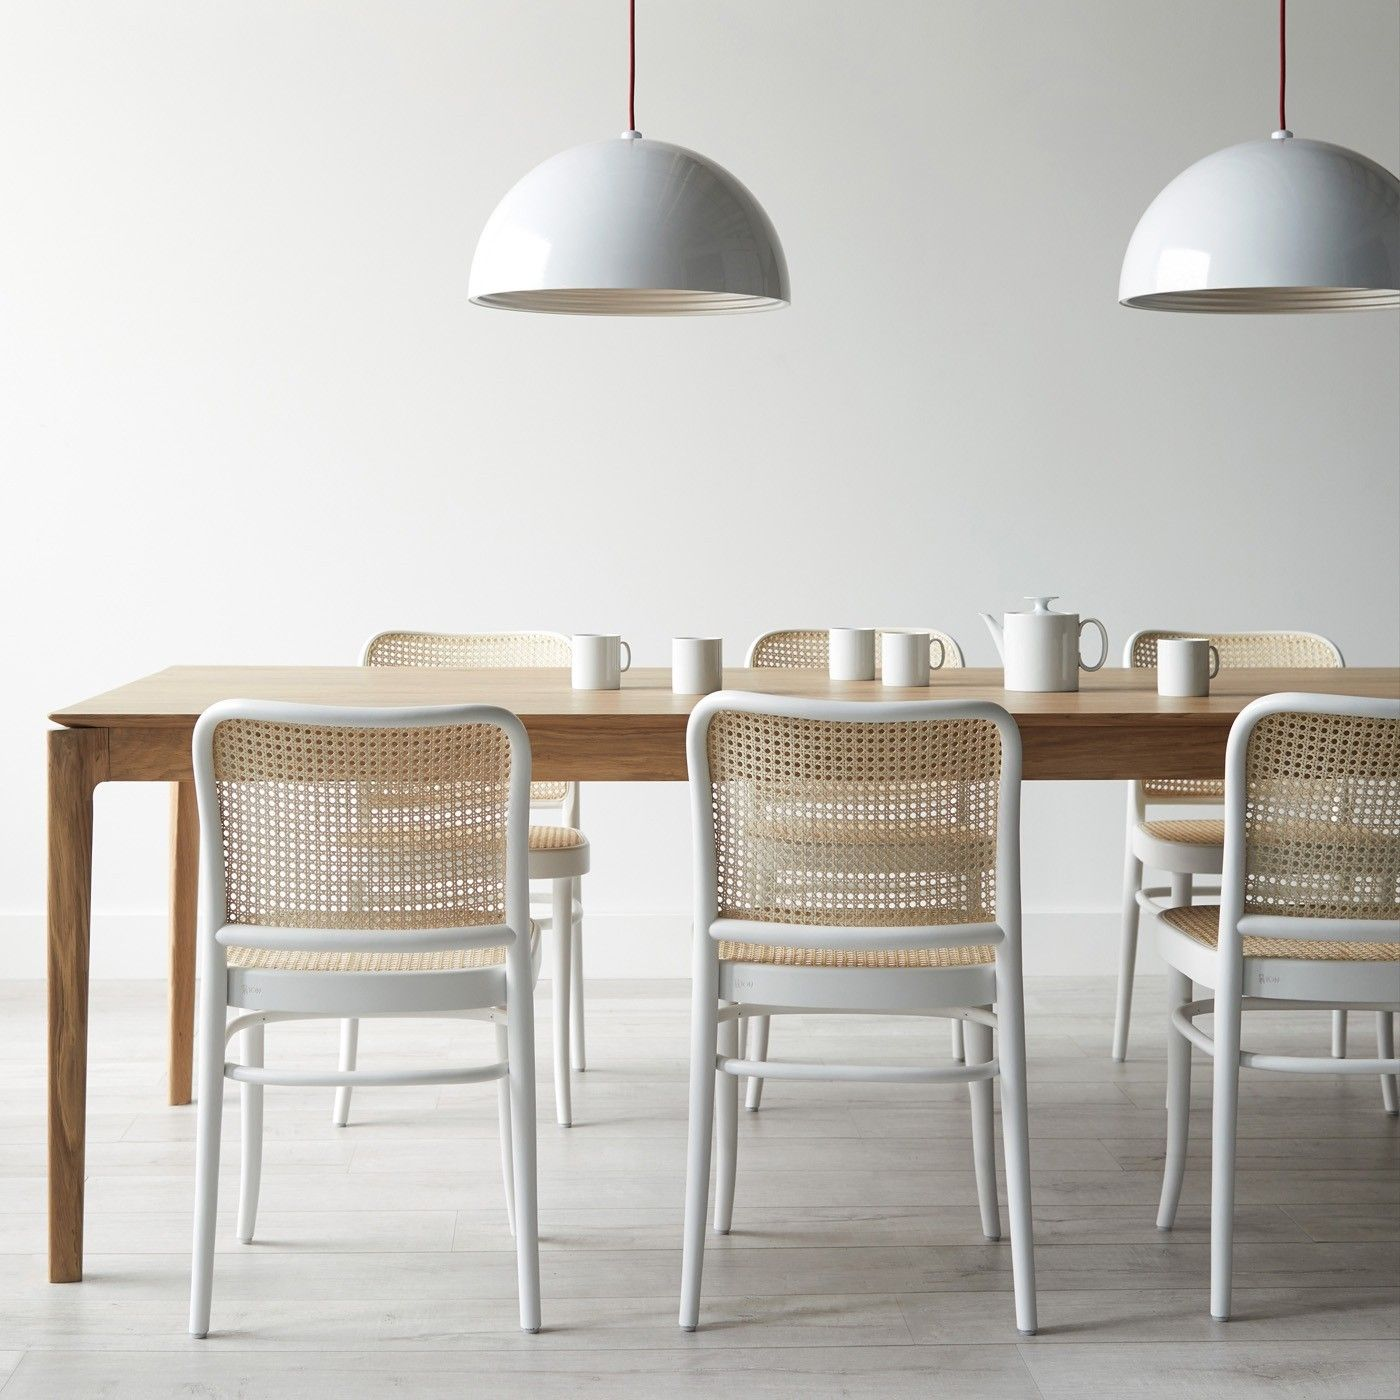 Fine 811 White Side Chair In 2019 White Dining Chairs Rattan Caraccident5 Cool Chair Designs And Ideas Caraccident5Info